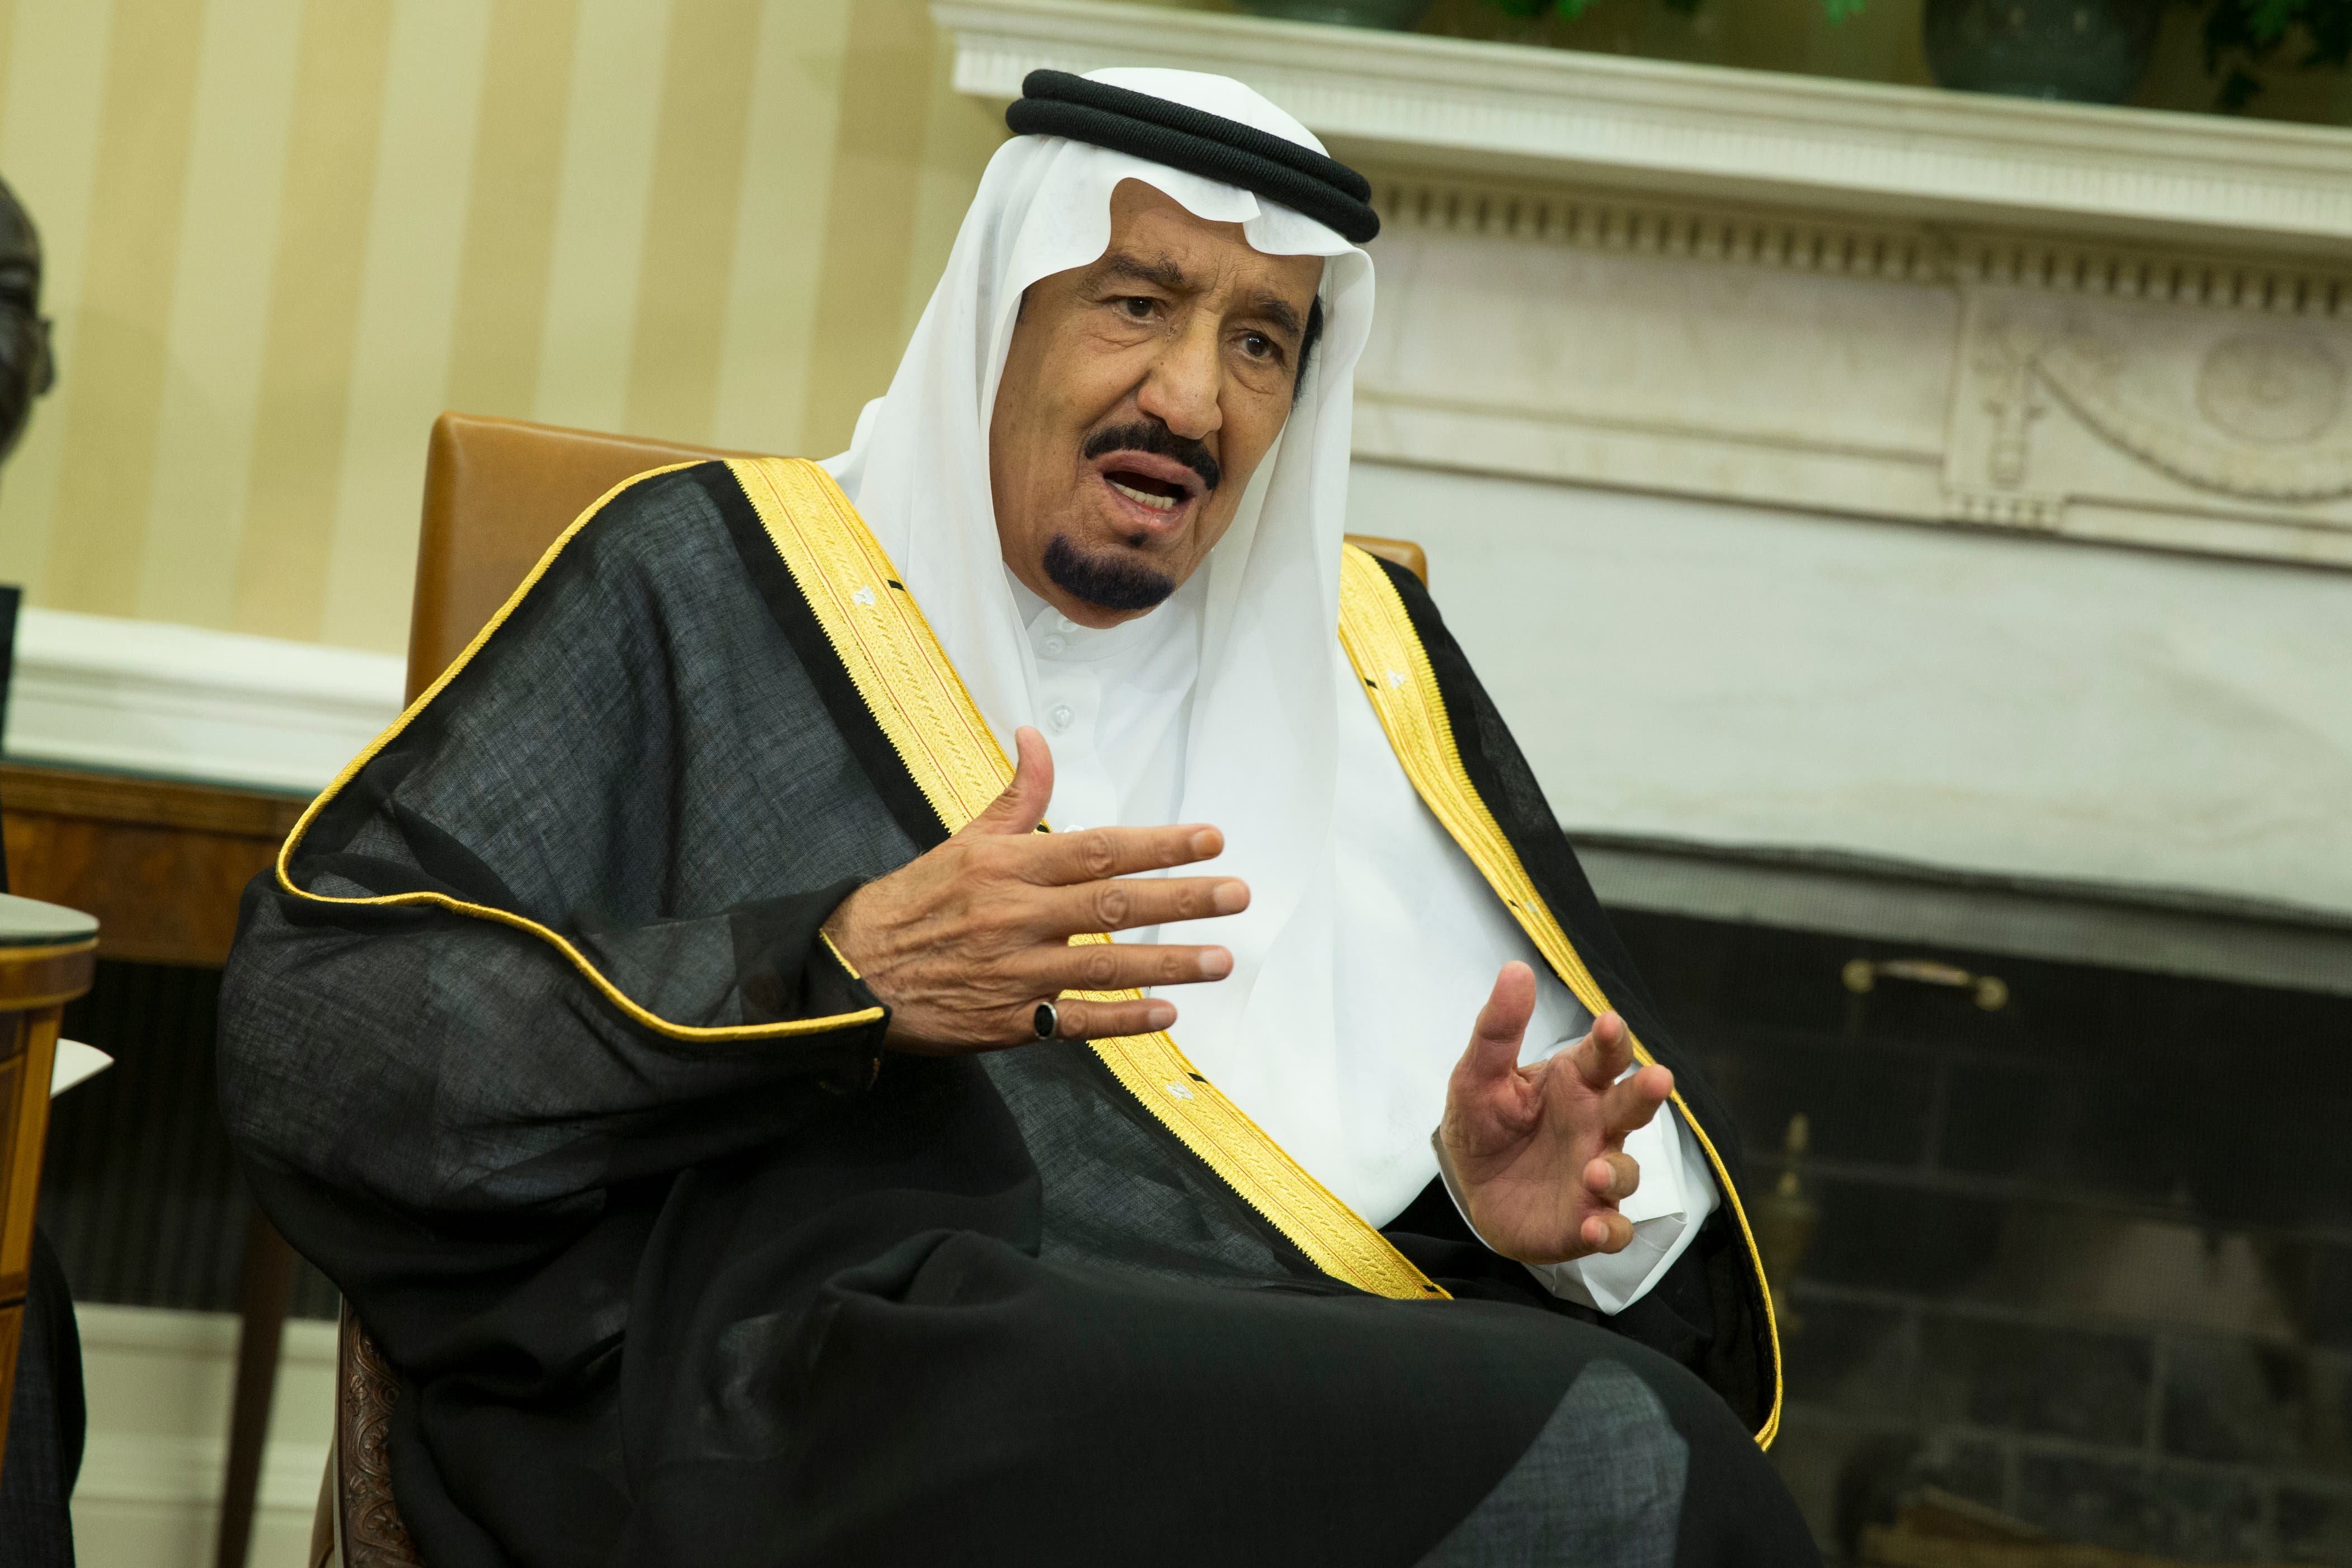 King Salman of Saudi Arabia speaks during a meeting with President Barack Obama in the Oval Office of the White House, on Friday, Sept. 4, 2015, in Washington. (AP Photo/Evan Vucci)